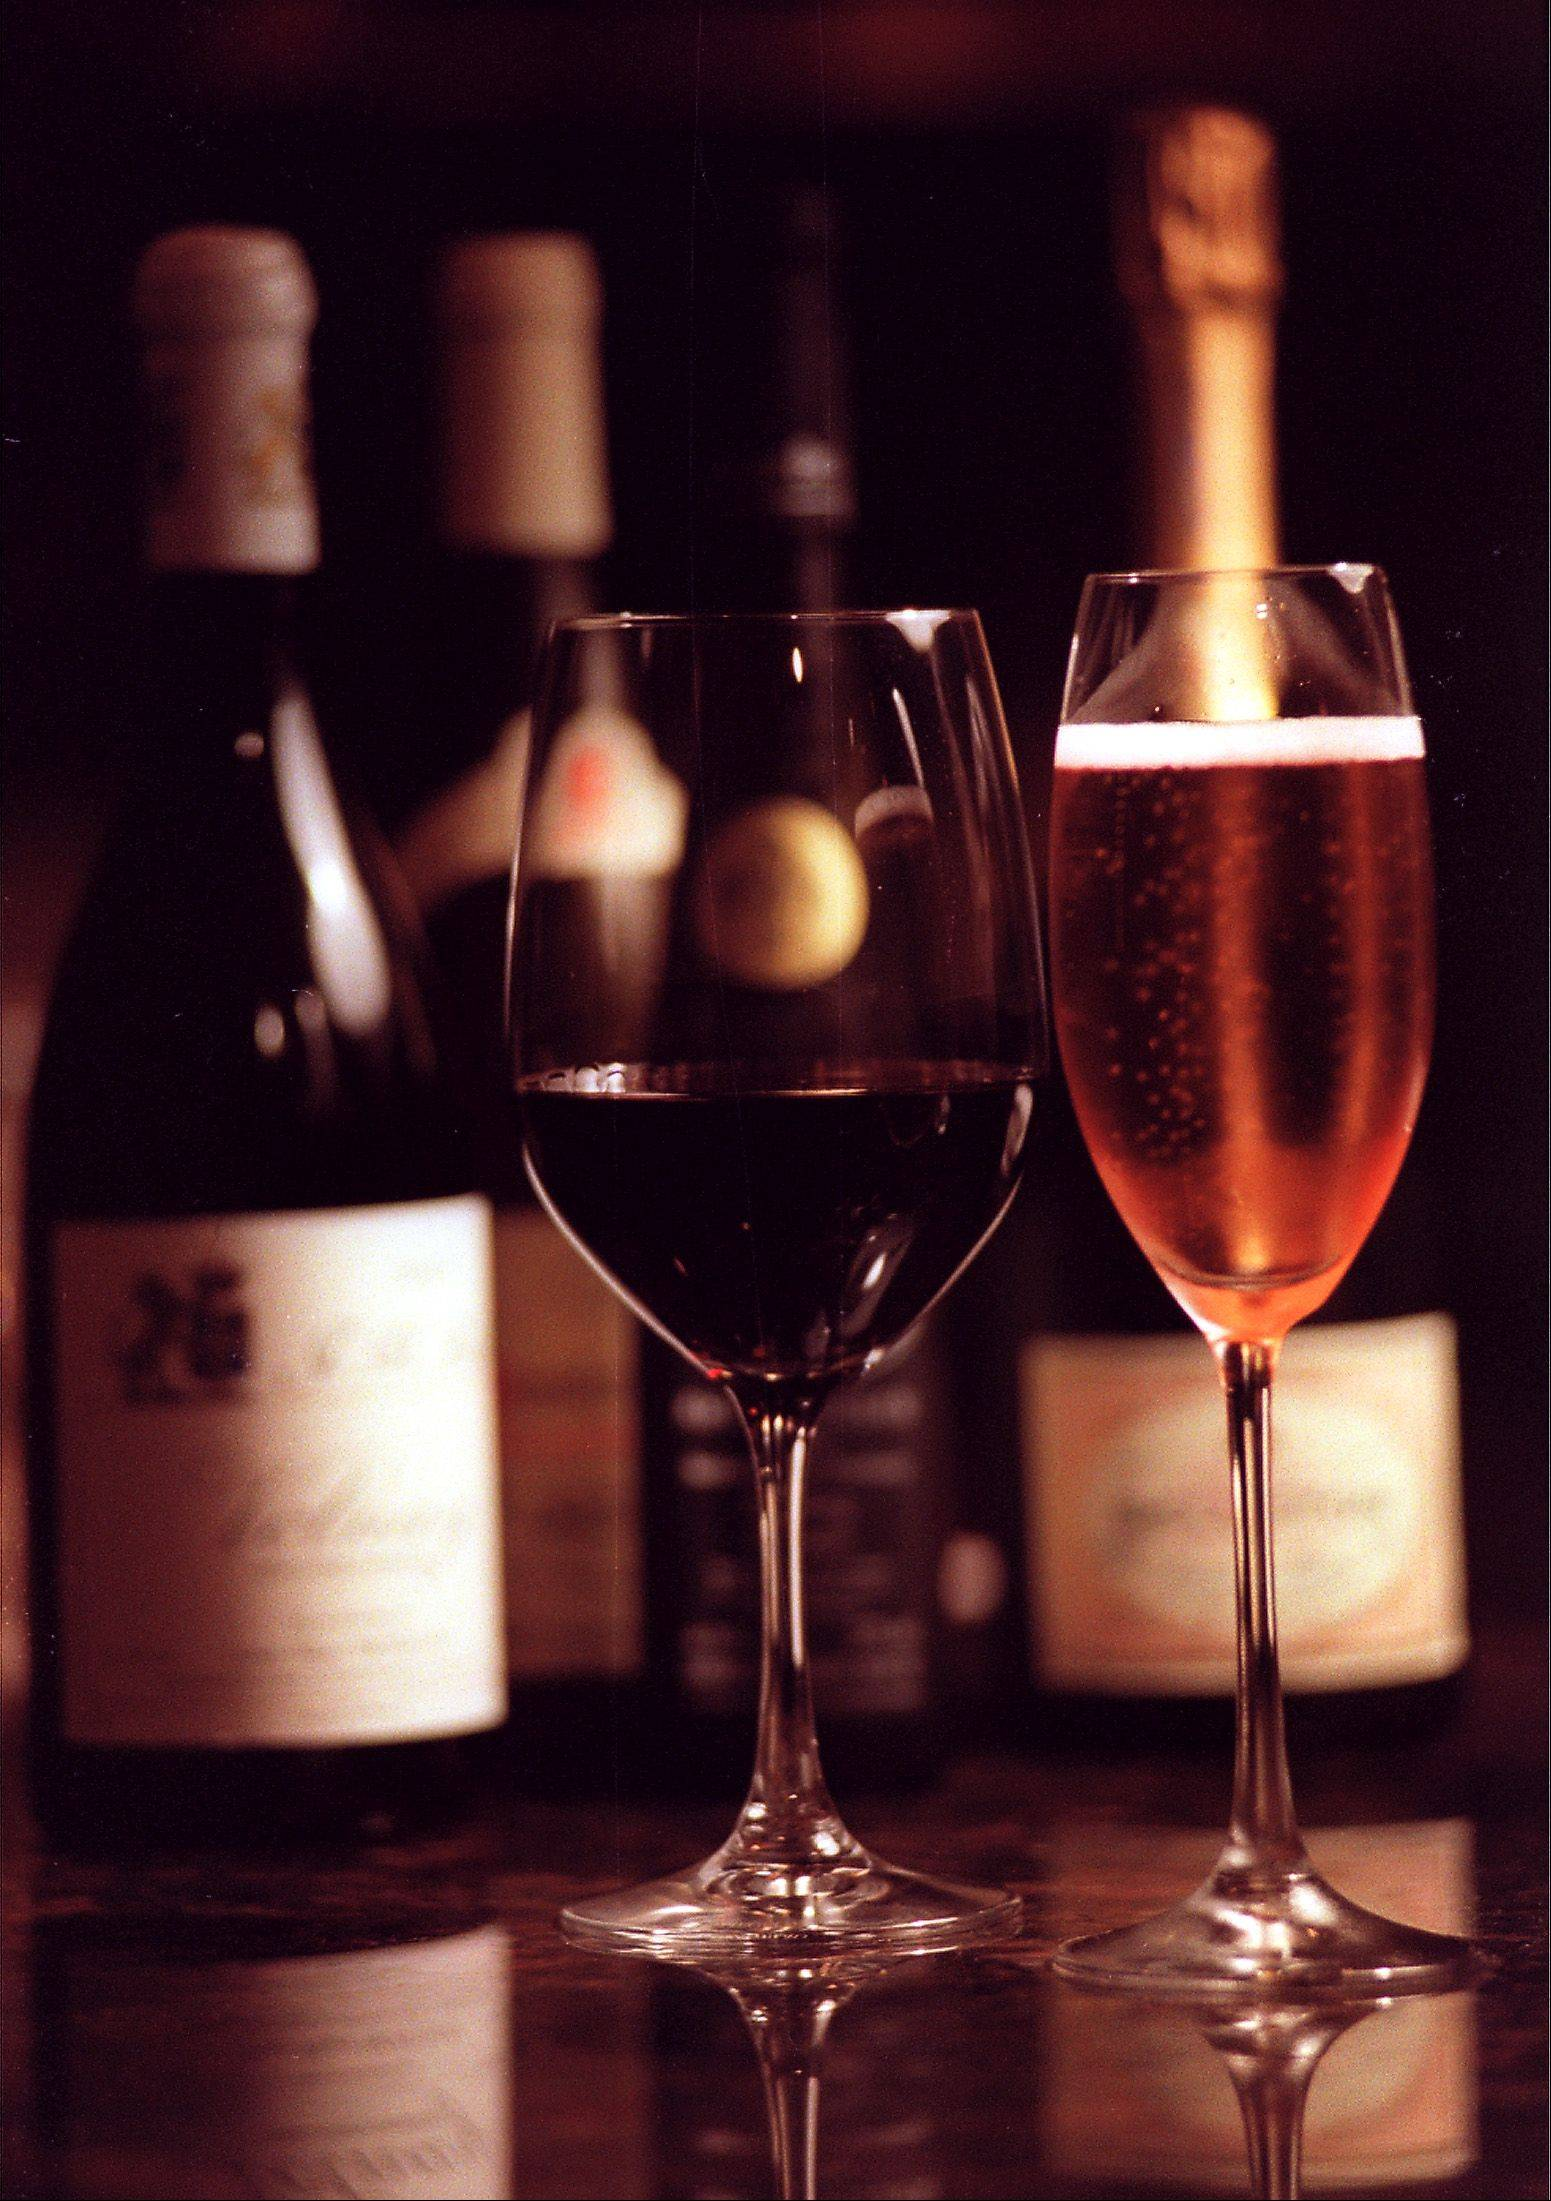 The Elgin Kiwanis Club will hold a wine tasting fundraiser Thursday, Nov. 15, in support of Kiwanis' worldwide goal of eliminating maternal and neonatal tetanus.